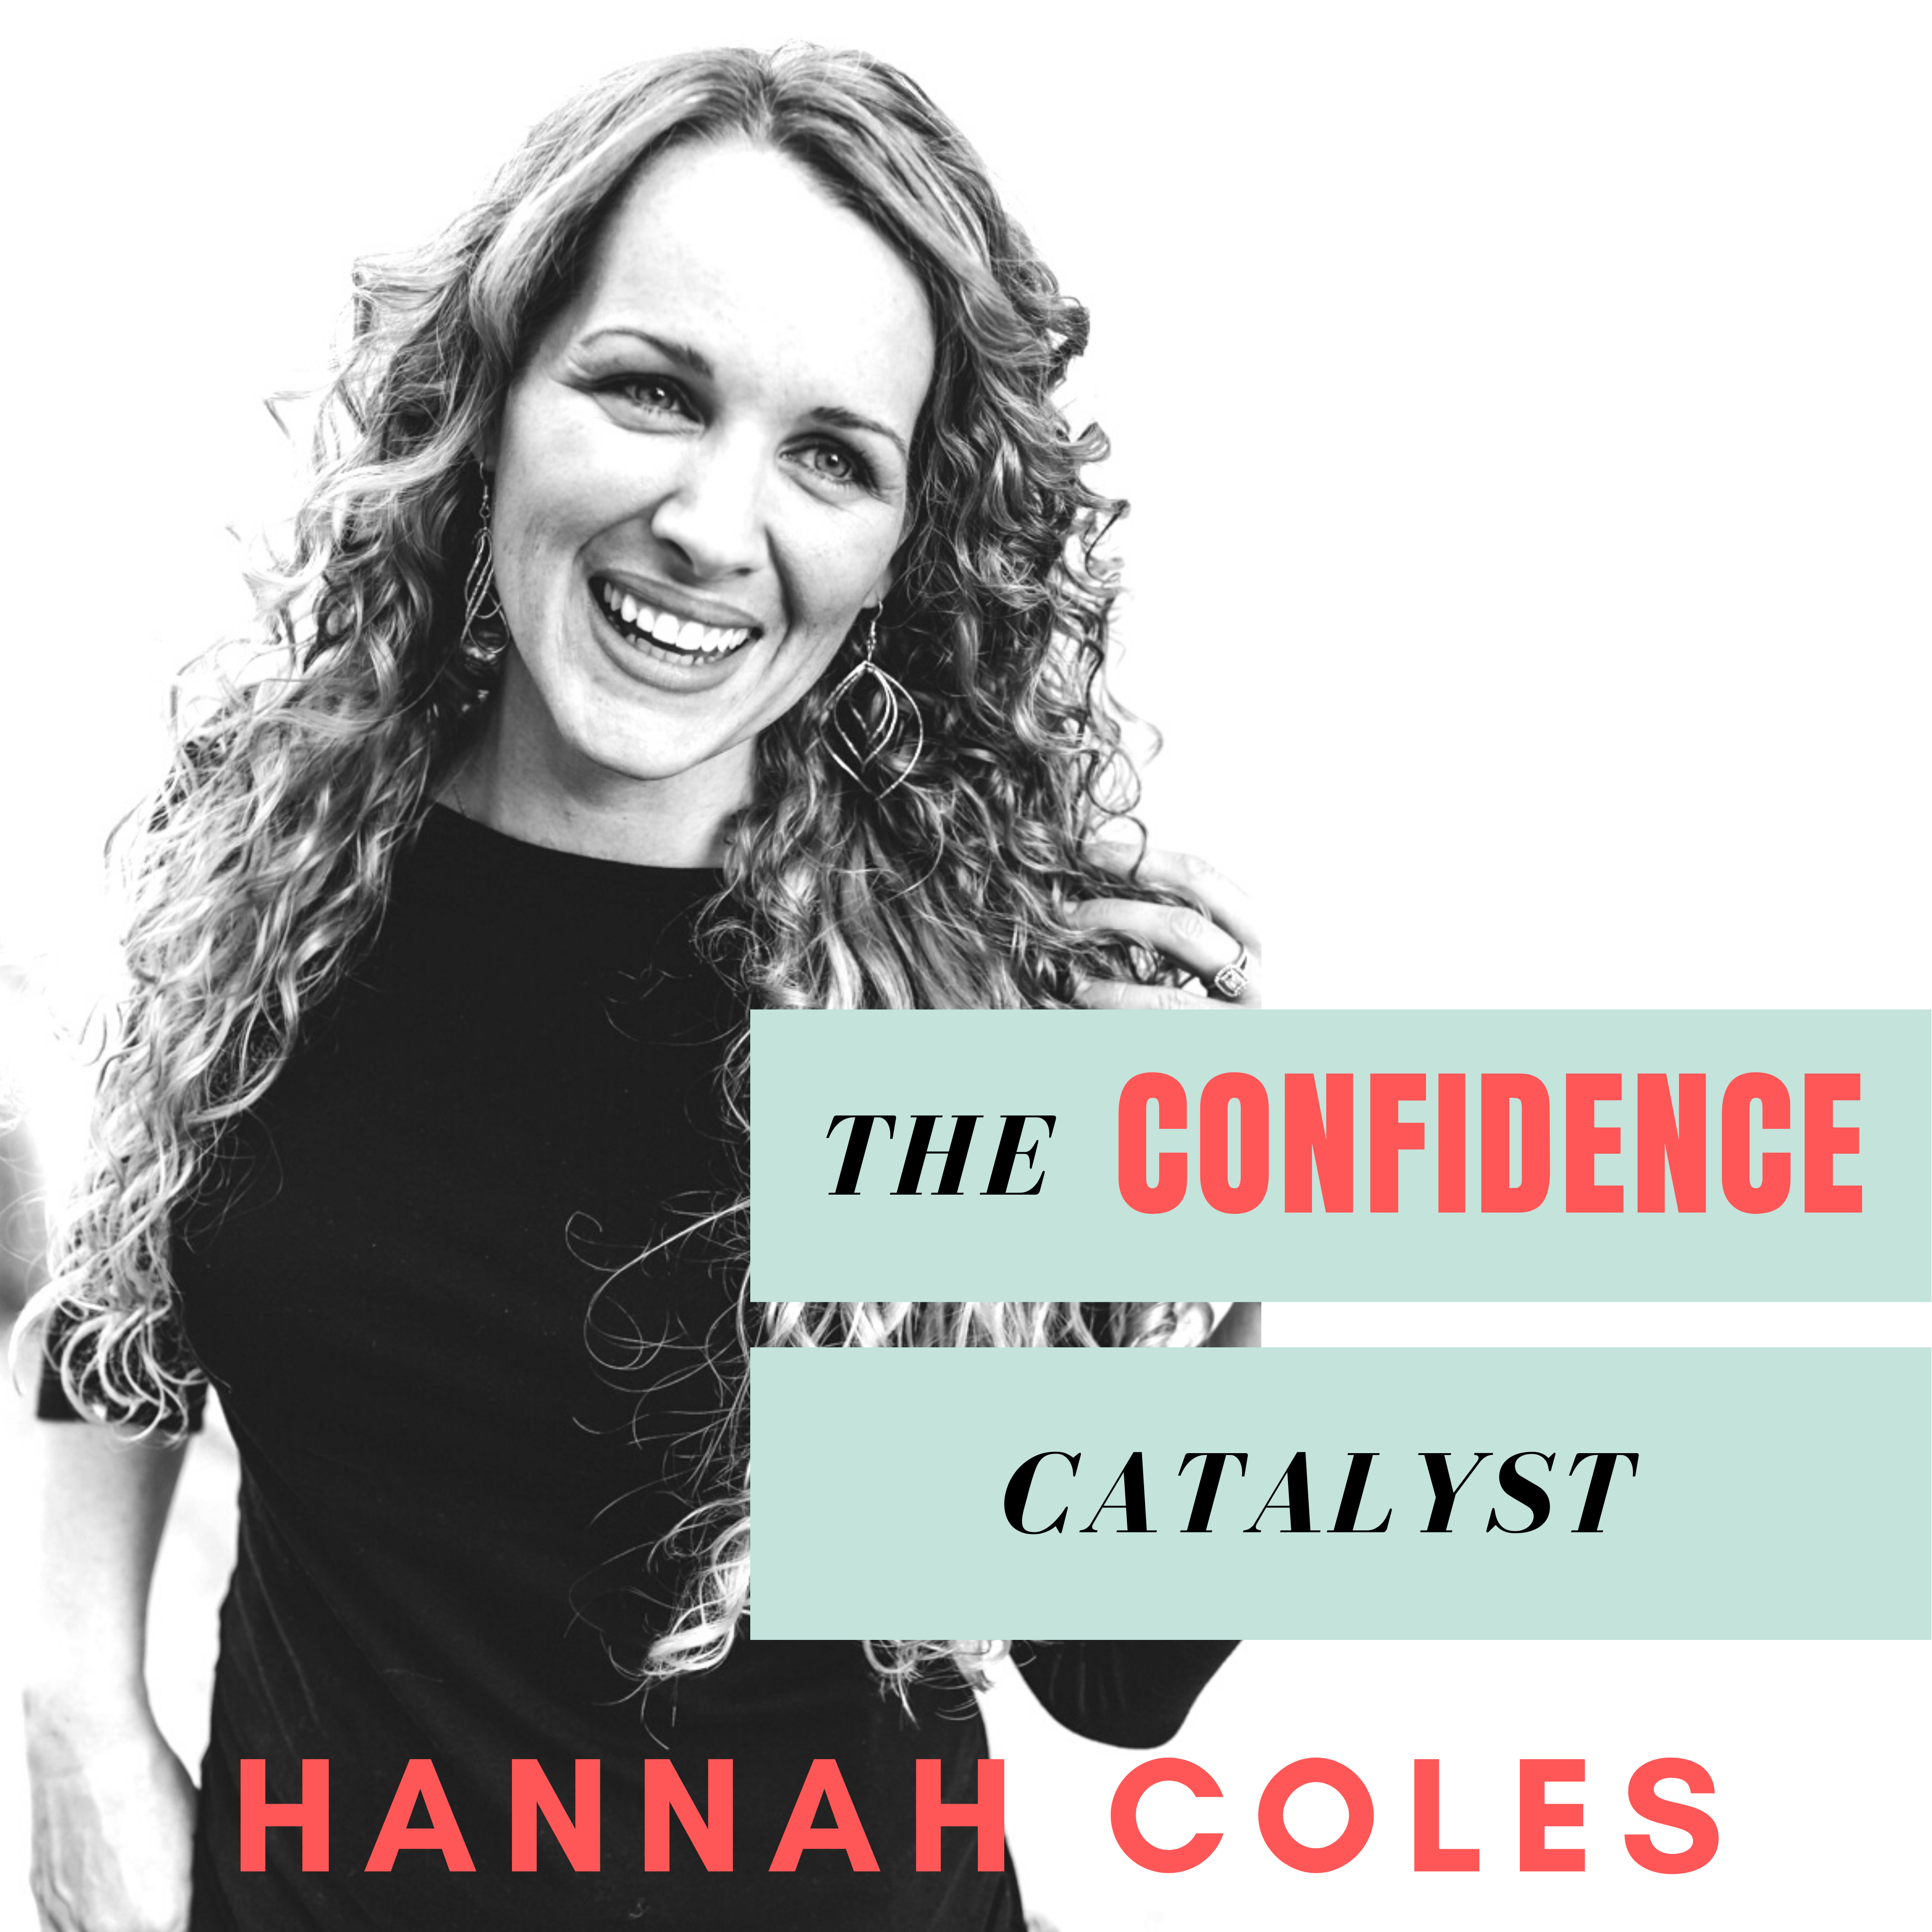 Episode 56: The Confidence Challenge Day 5 Bringing it all Together